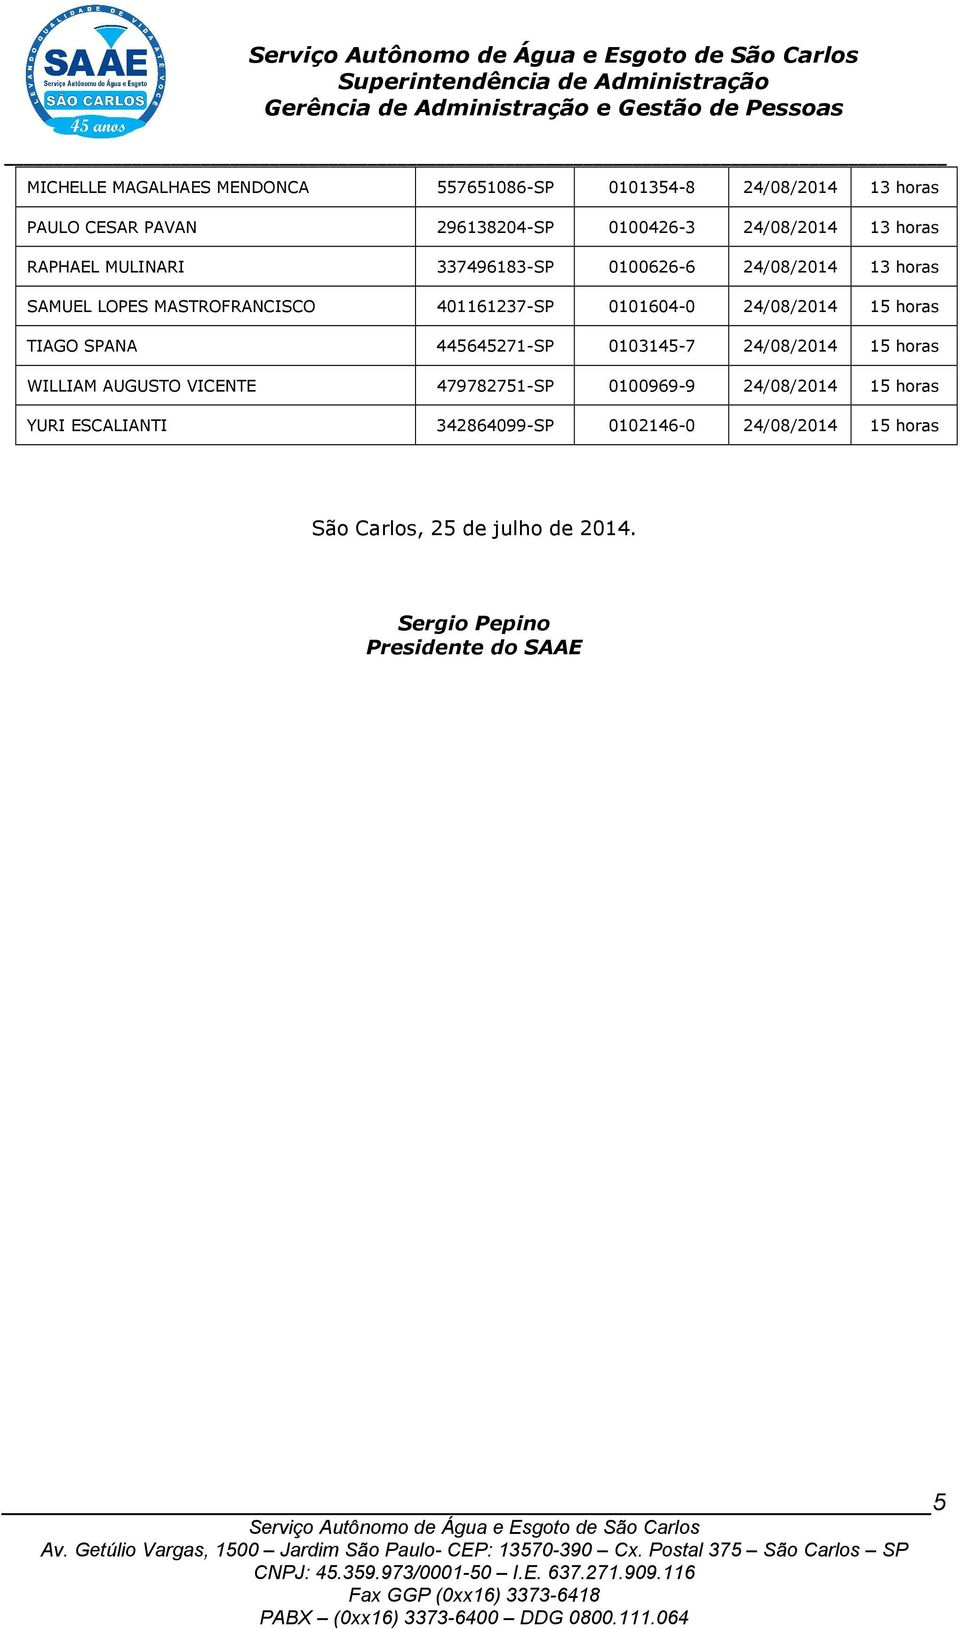 24/08/2014 15 horas TIAGO SPANA 445645271-SP 0103145-7 24/08/2014 15 horas WILLIAM AUGUSTO VICENTE 479782751-SP 0100969-9